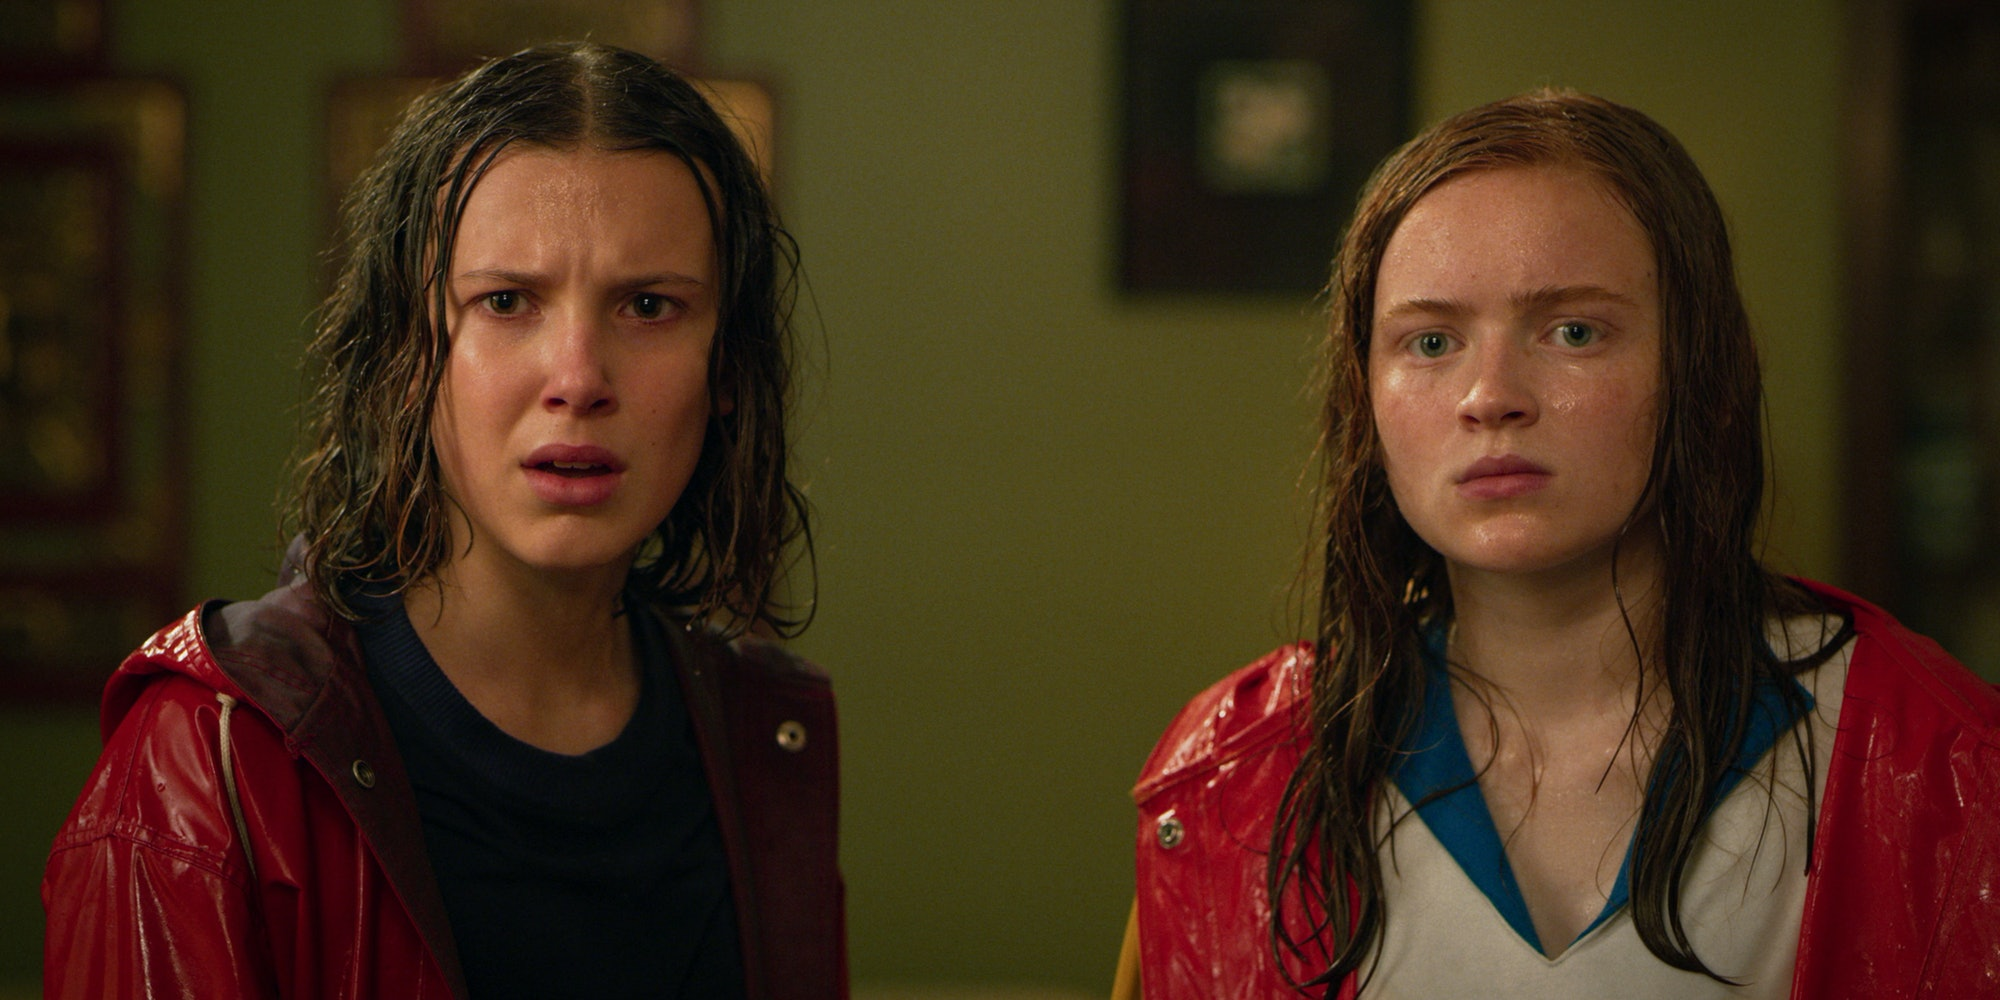 Millie Bobby Brown and Sadie Sink in Stranger Things